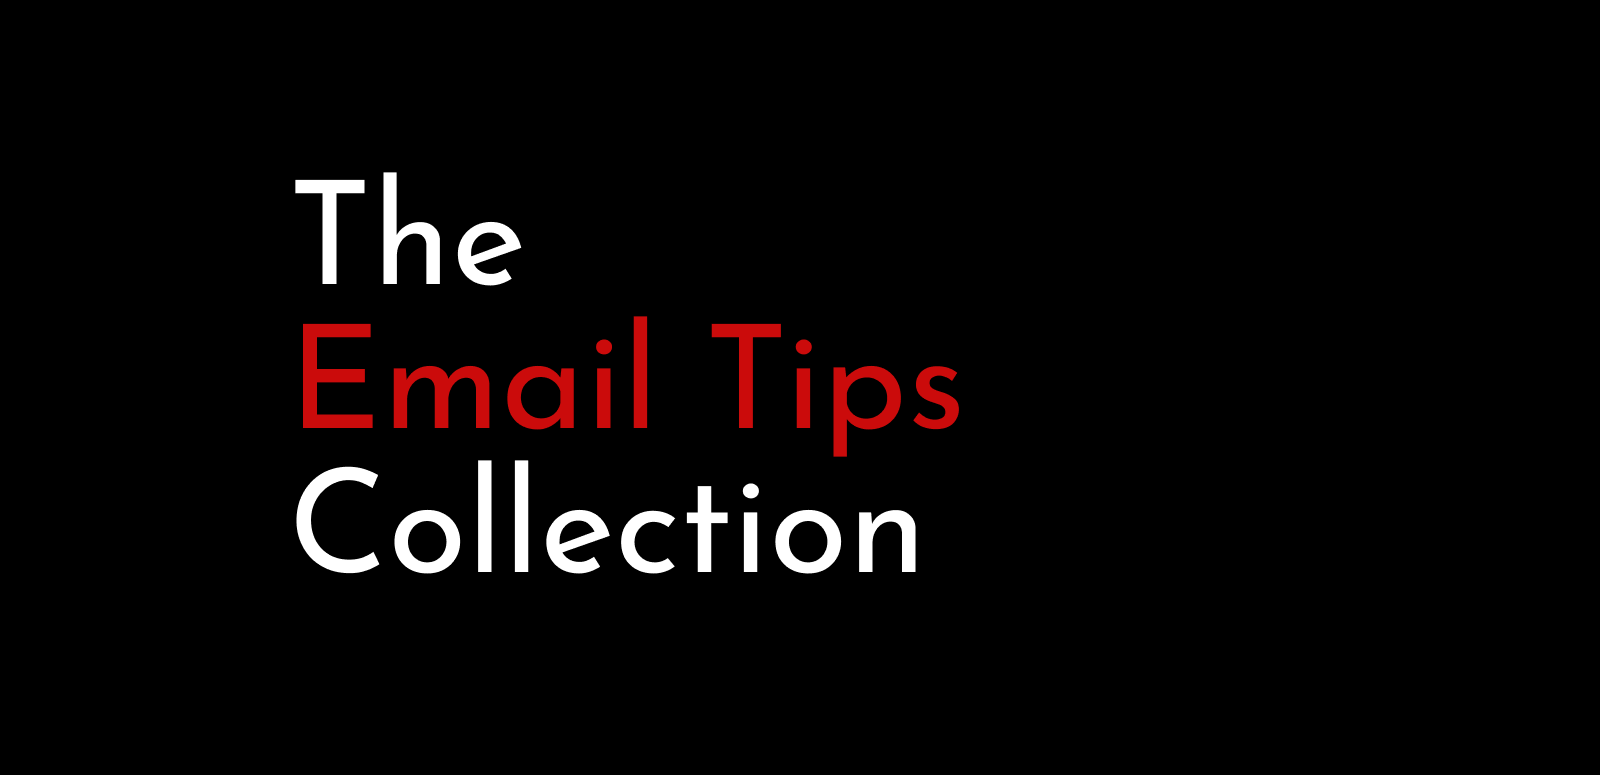 The Email Tips Collection